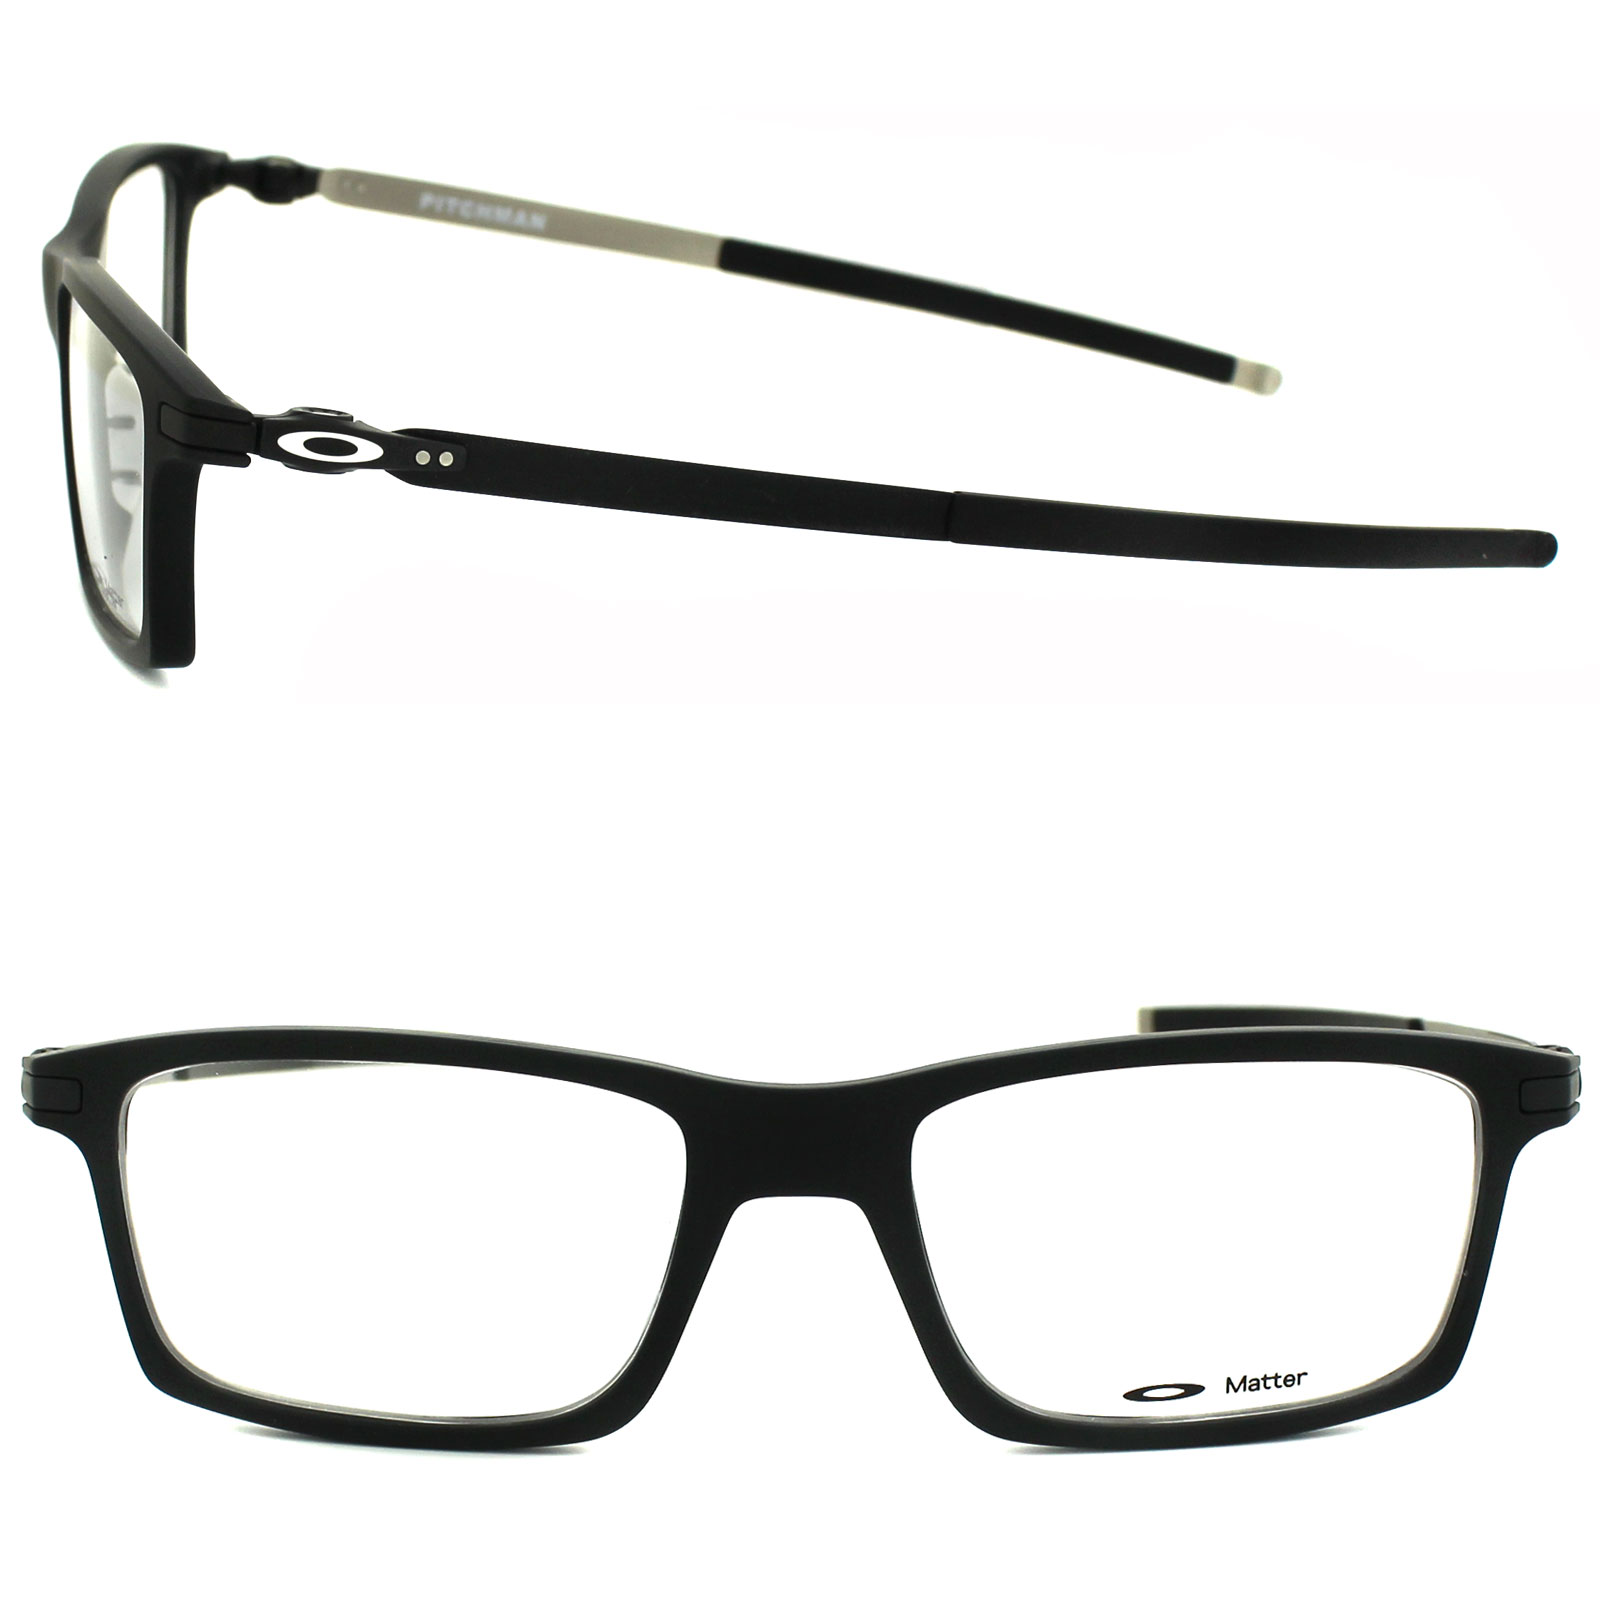 8e05a6ae75 Details about Oakley Glasses Frames Pitchman OX8050-01-53 Satin Black